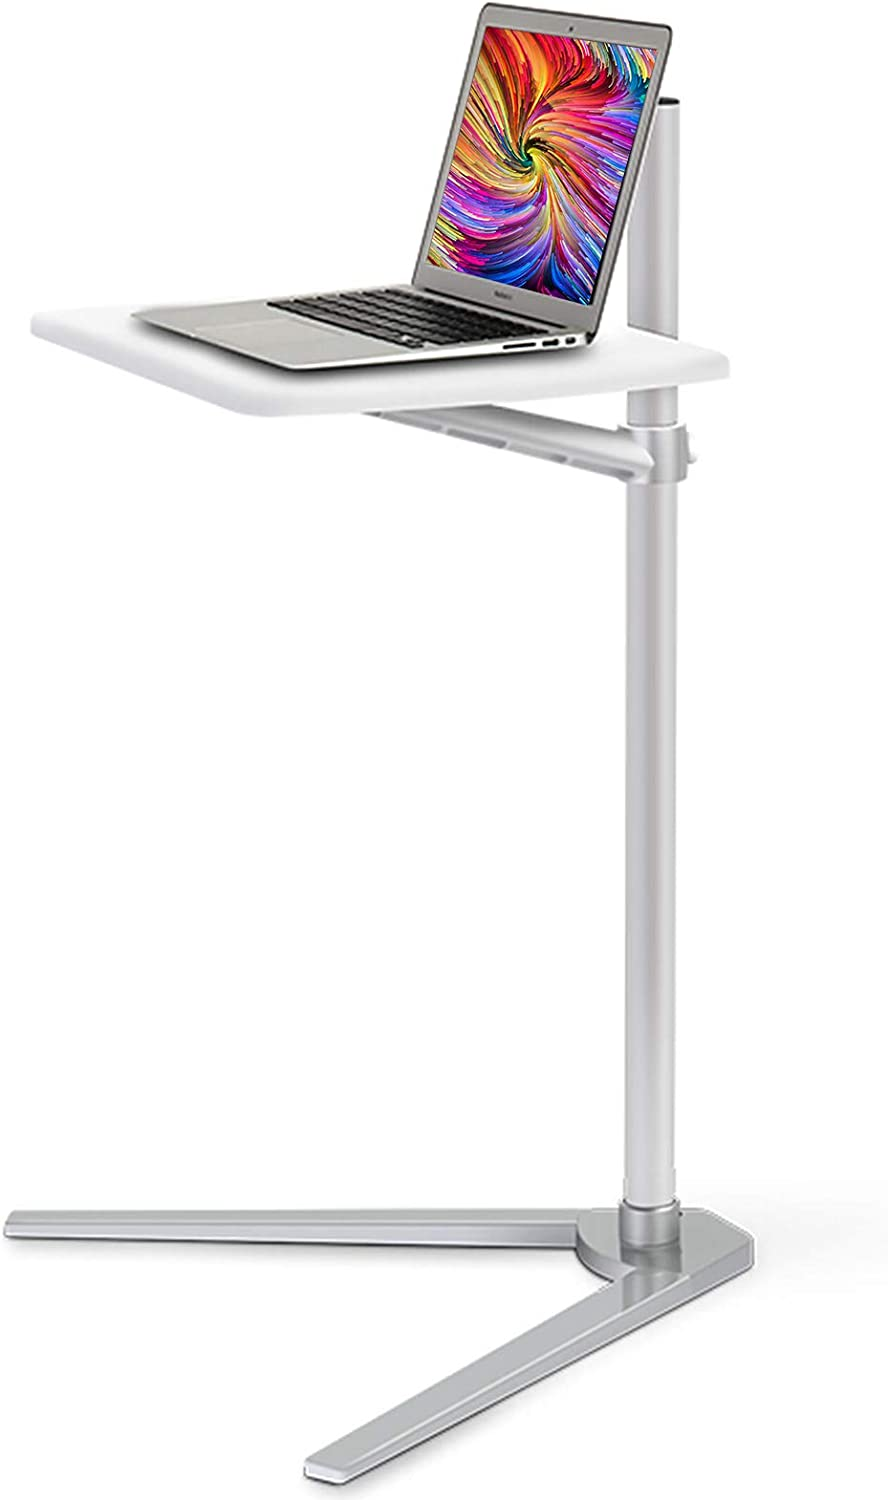 Floor Stand for Laptop,Sofa Side Table Slide Under,Aluminum Height Adjustable Table for Bed and Couch,Snack Table.